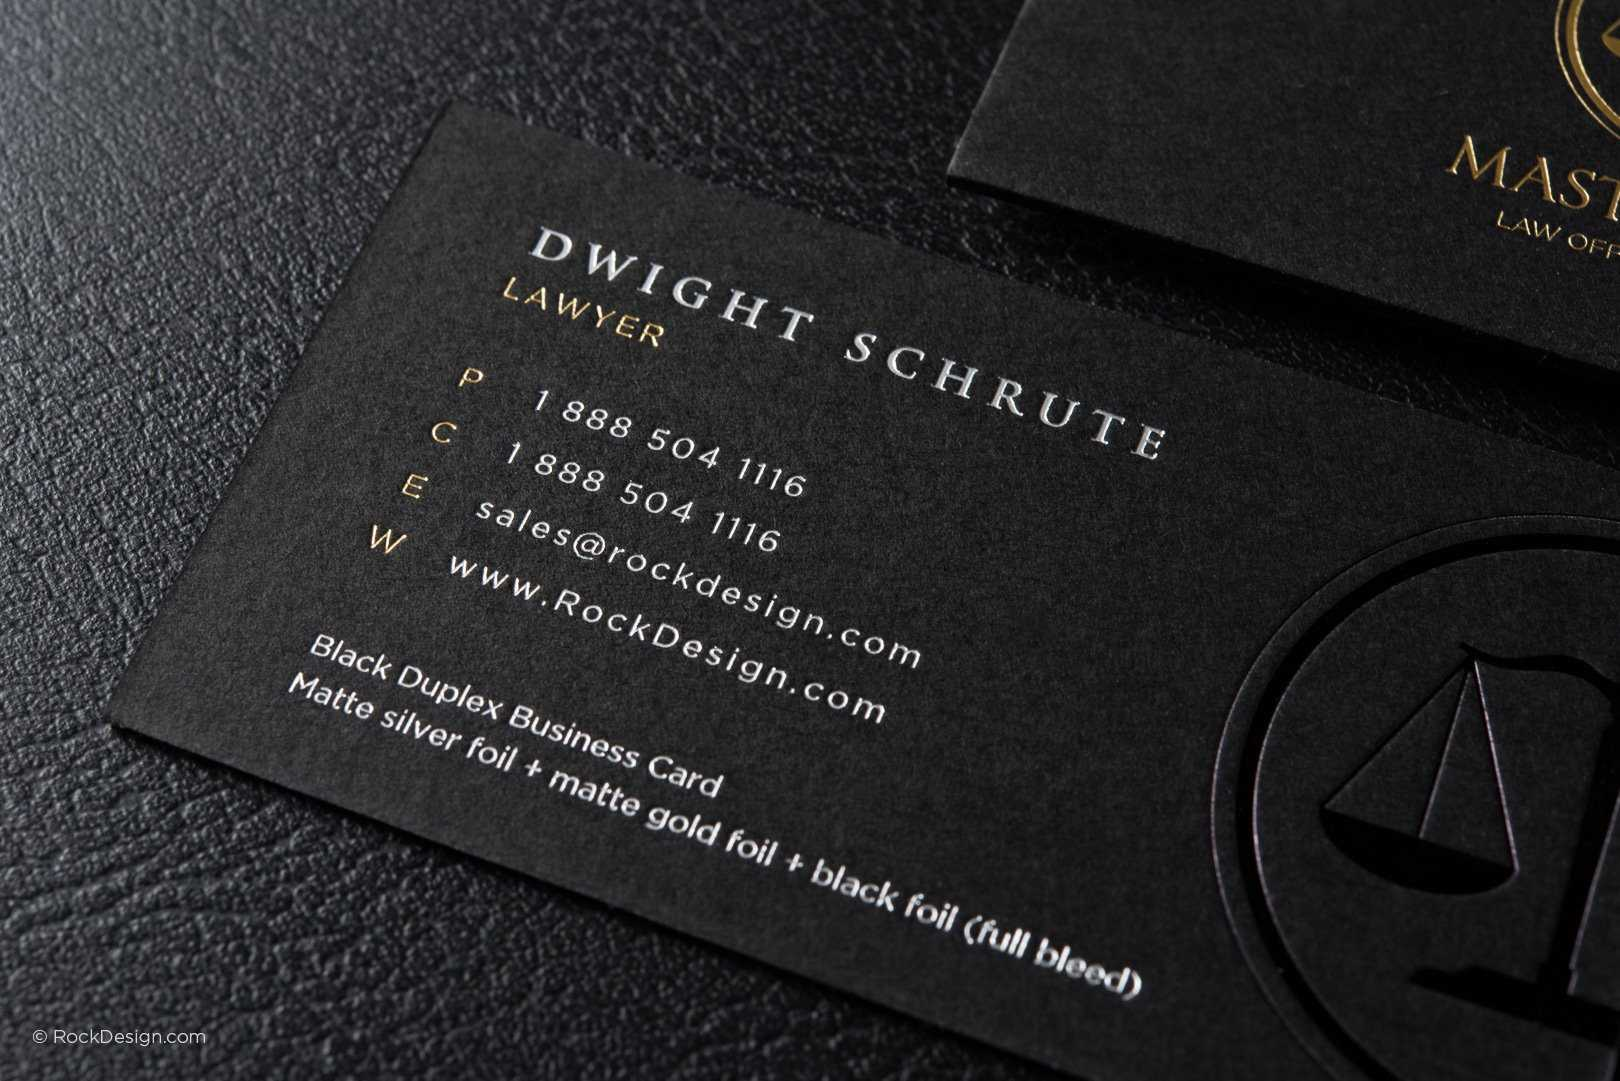 Free Lawyer Business Card Template | Rockdesign Intended For Legal Business Cards Templates Free